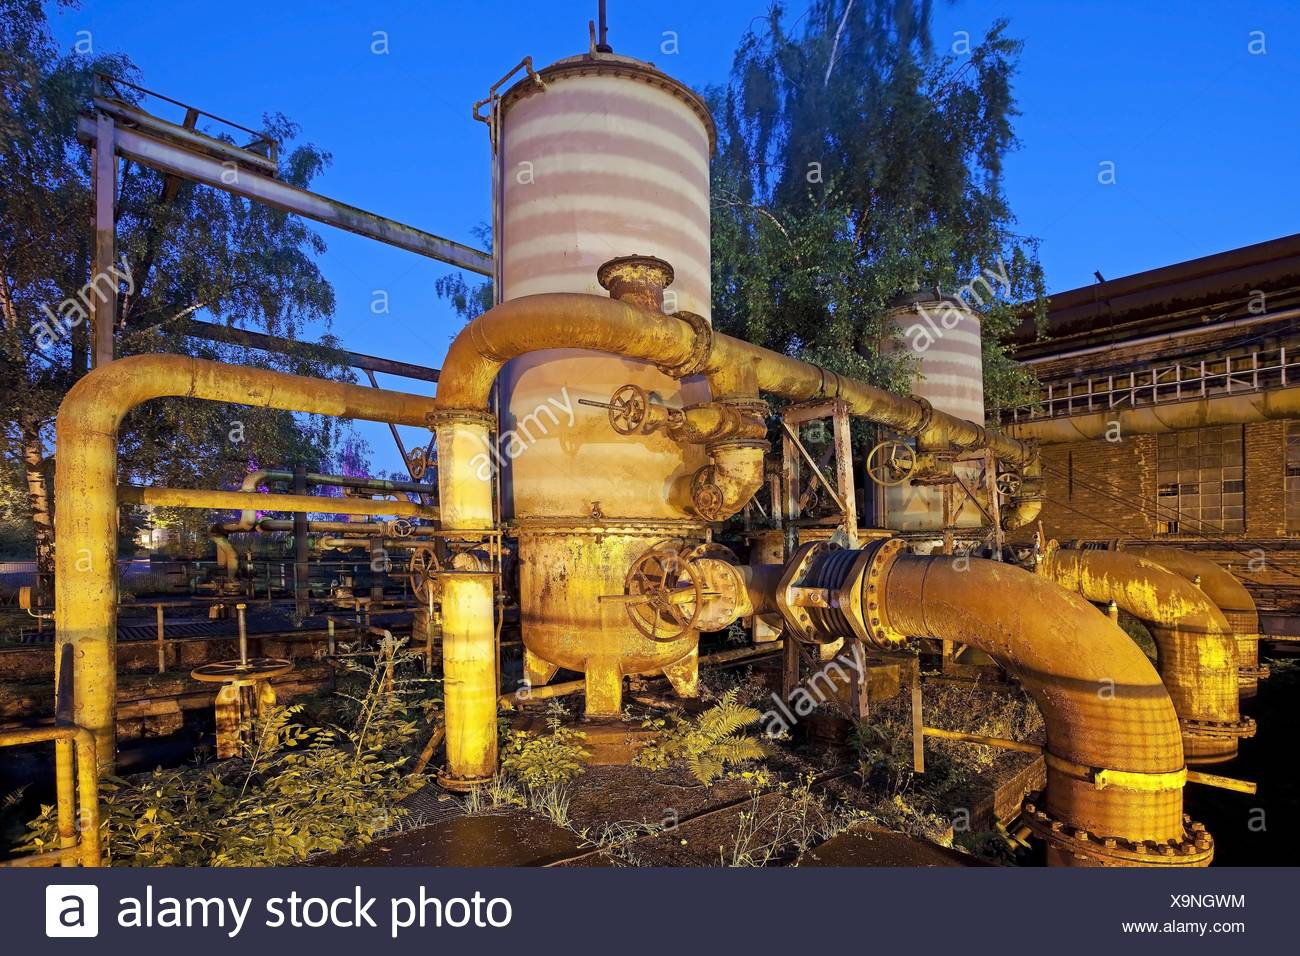 Kokerei Hansa in der Daemmerung, Deutschland, Nordrhein-Westfalen, Ruhrgebiet, Dortmund | coking plant Hansa in the evening, Ger - Stock Image